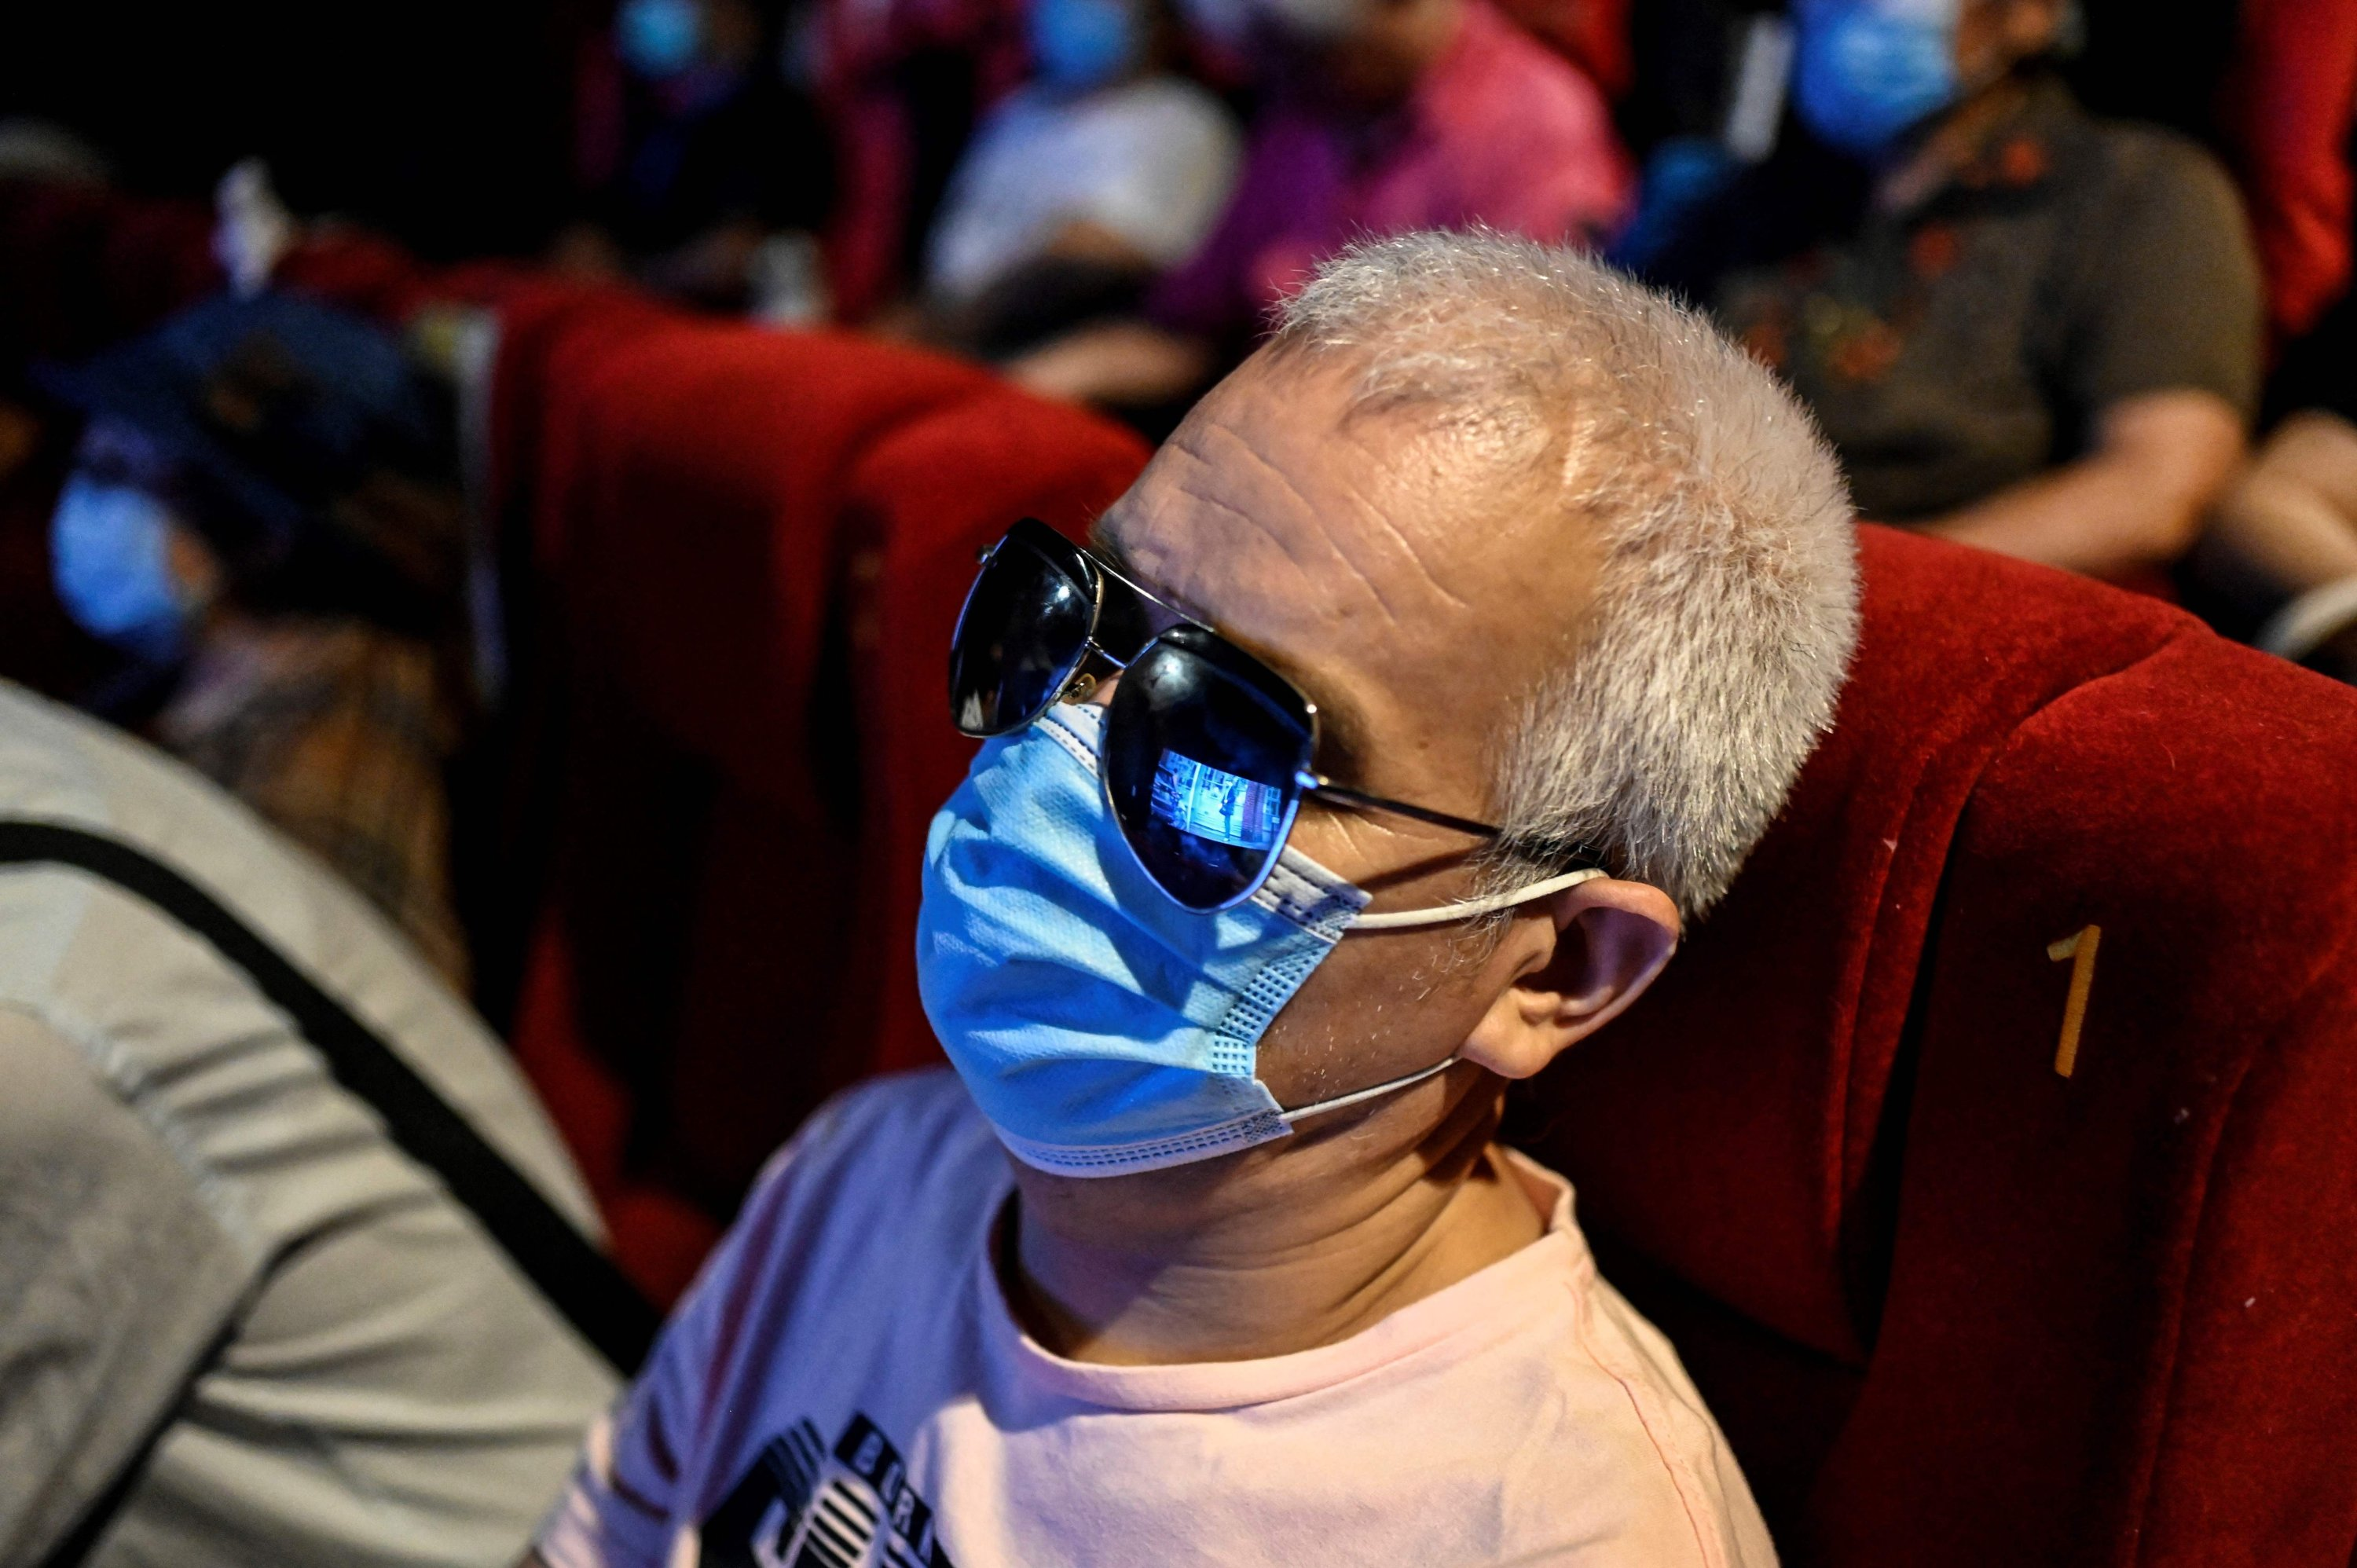 Visually impaired massage therapist Zhang Xinsheng listens to the film narrator during a screening at a cinema in Beijing, China, Aug. 7, 2021. (AFP Photo)